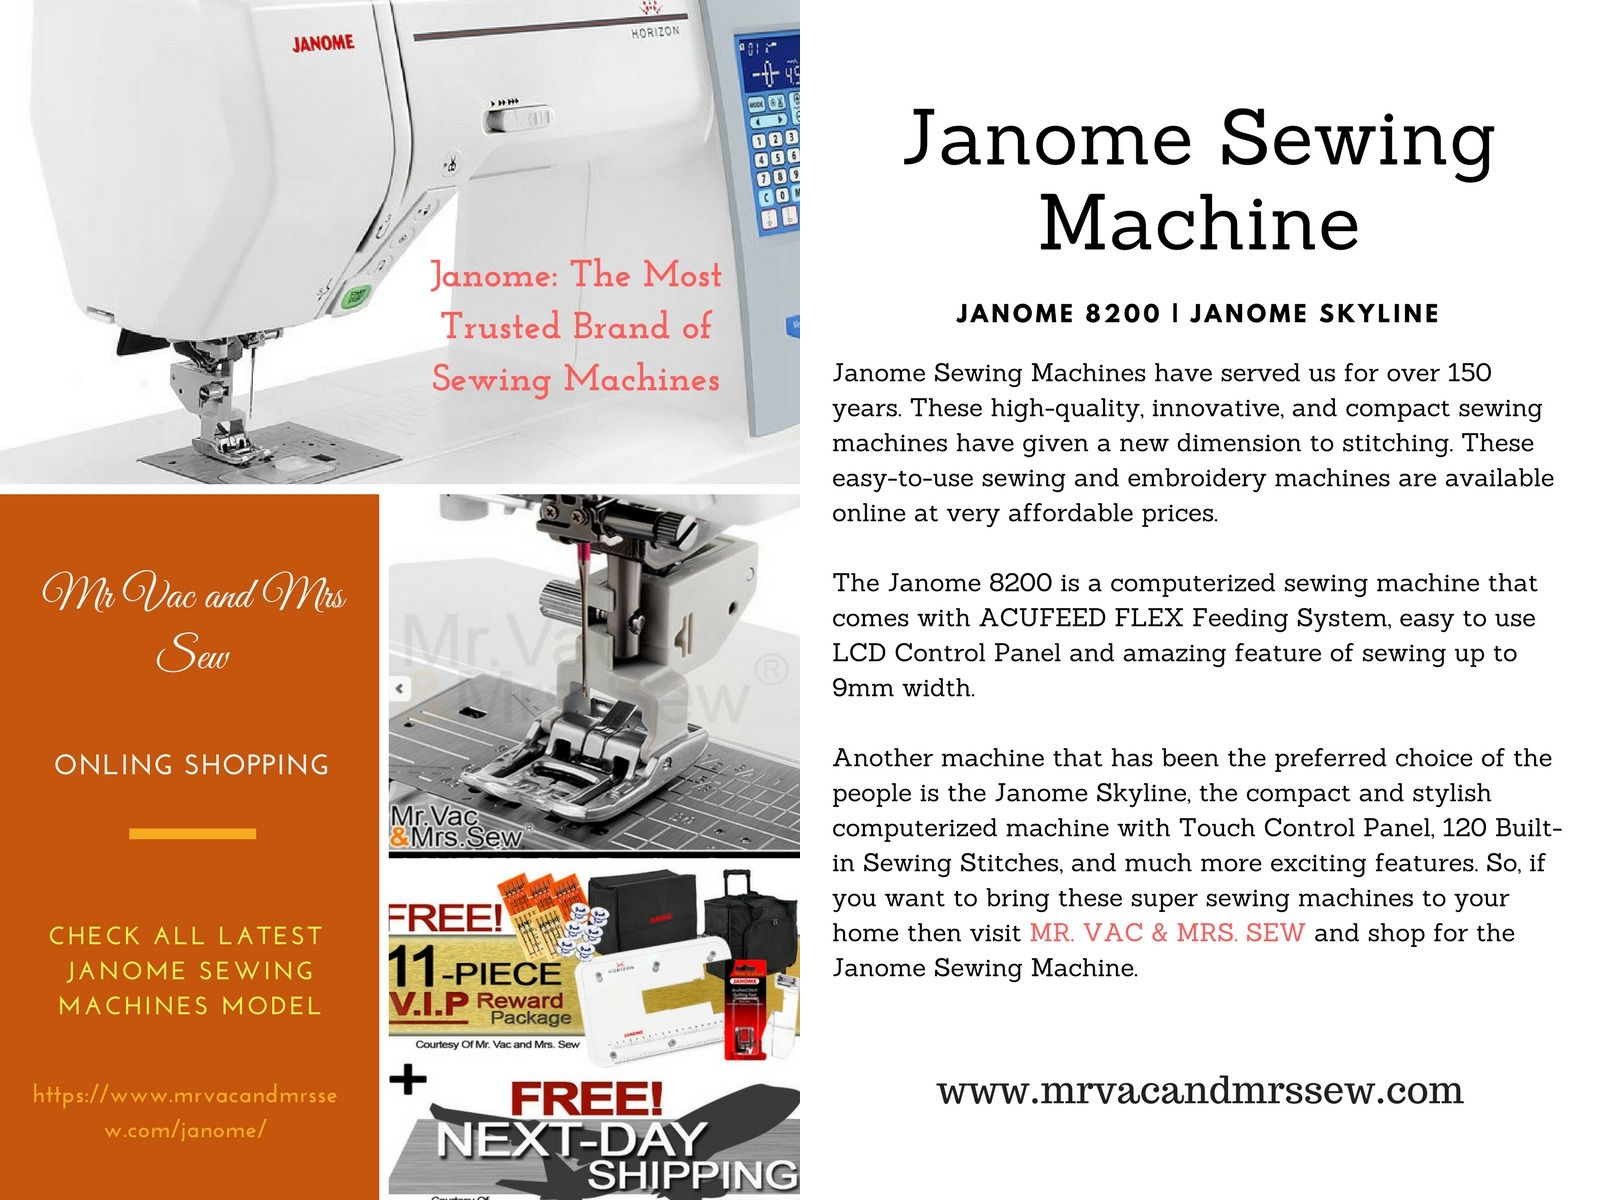 Looking For High Quality Janome Sewing Machines Visit Mr Vac Mrs Sew